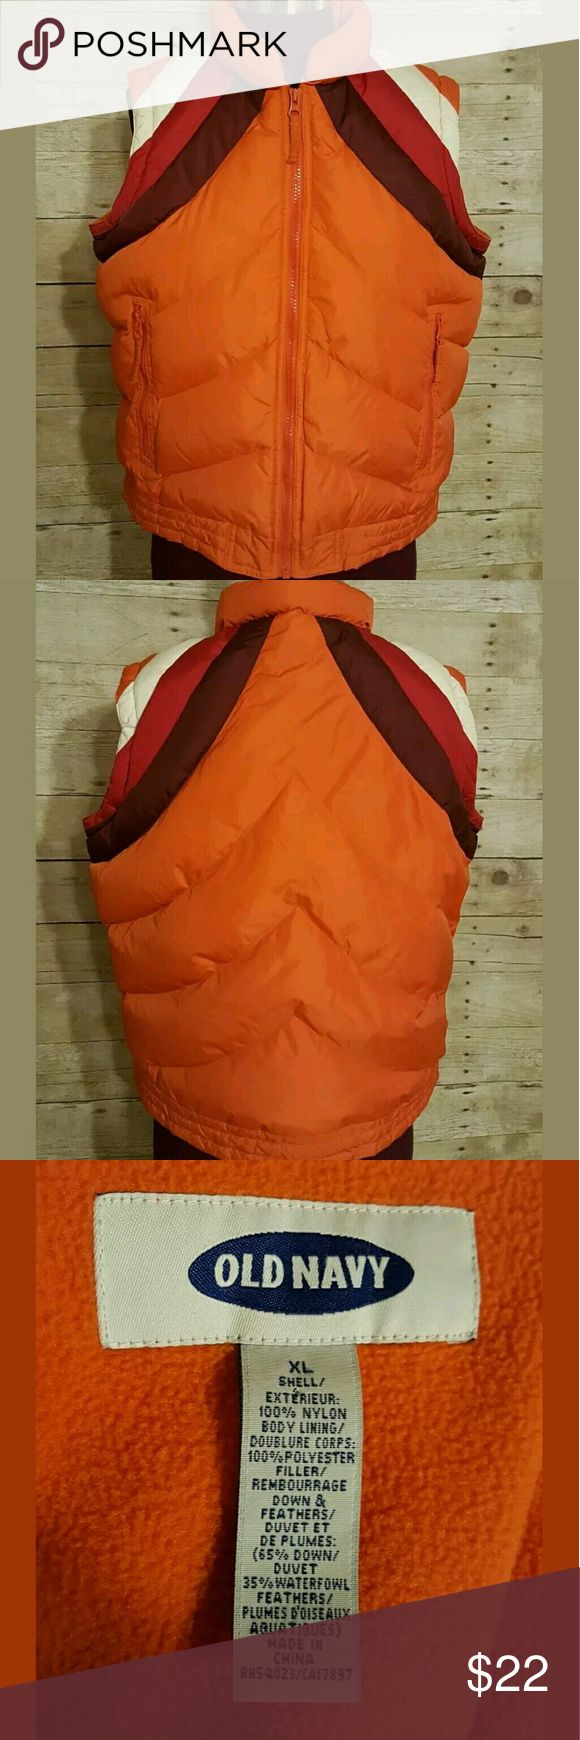 Old Navy Orange Puffy Down Vest Old Navy puffy winter vest. Orange with dark purple, red, and white stripes on shoulders, sleeveless, collared, zip front, two side pockets, one inner pocket, fleece-lined, filled with down and waterfowl feathers.   Women's size XL.   Pre-owned. Excellent condition, no rips or stains. Old Navy Jackets & Coats Vests